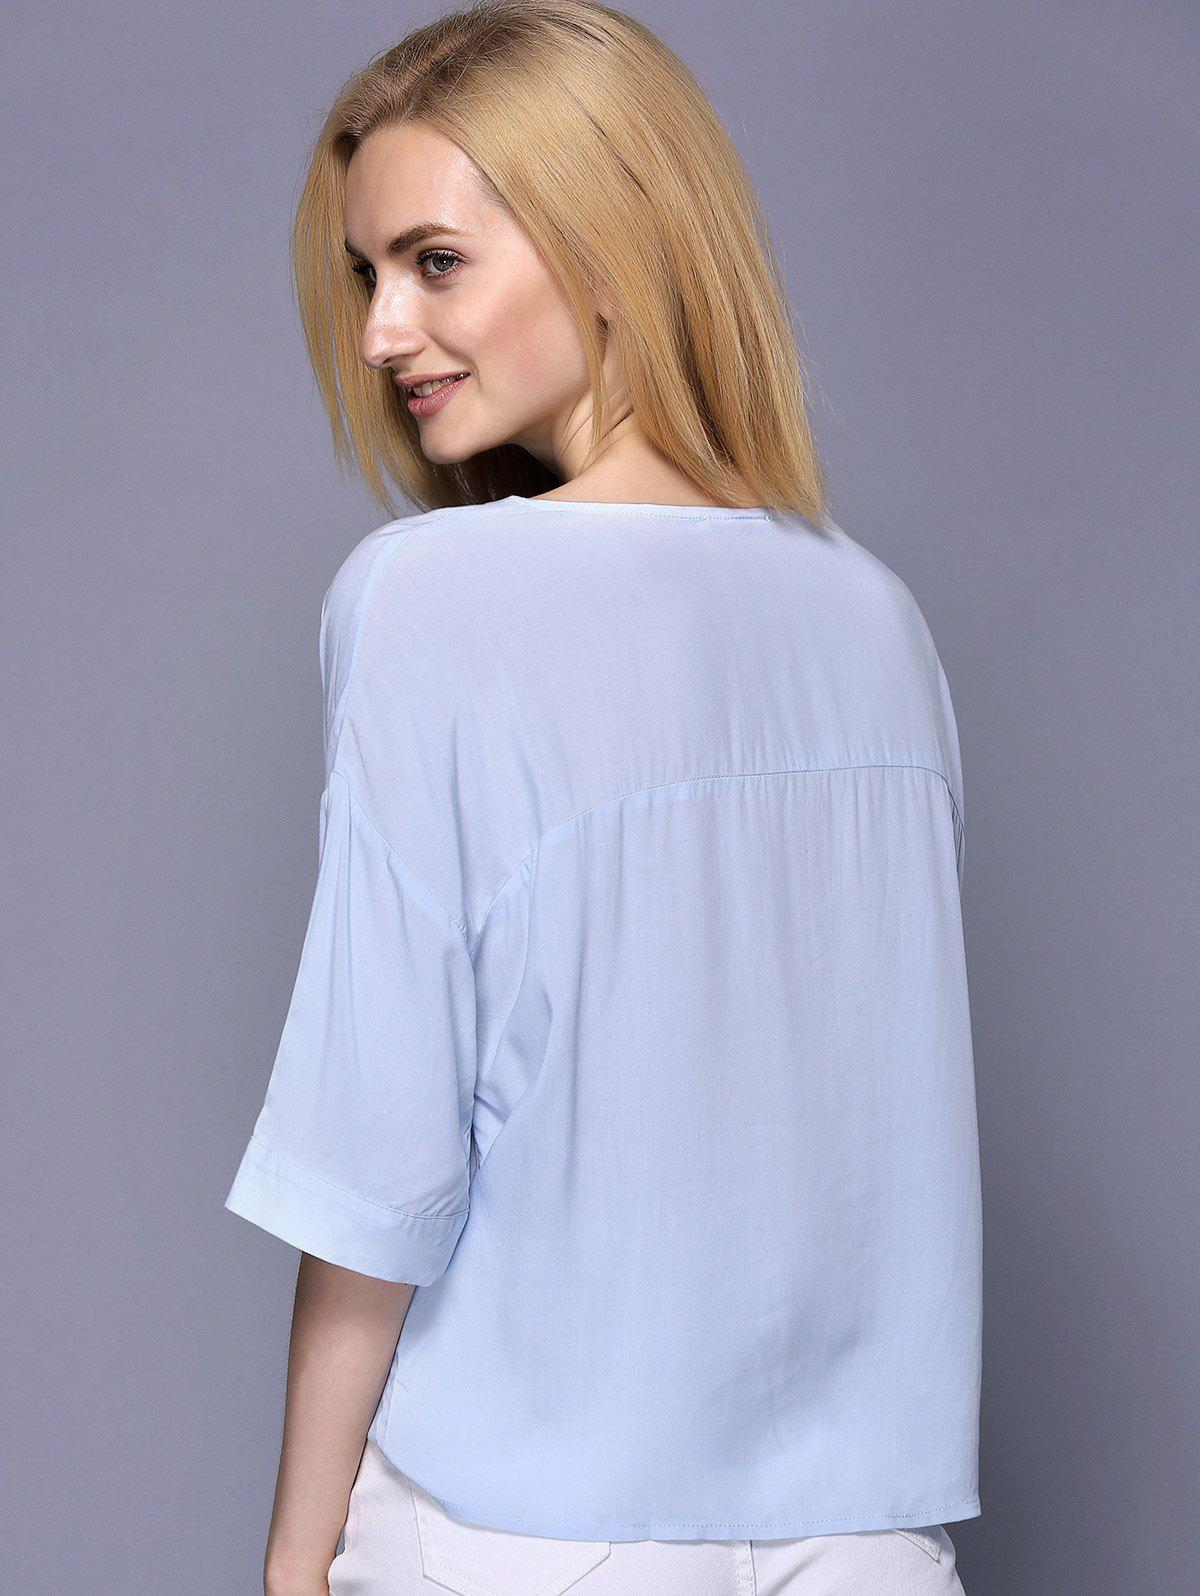 Trendy Women's 3/4 Sleeve V-Neck Loose-Fitting Pure Color Blouse - LIGHT BLUE ONE SIZE(FIT SIZE XS TO M)